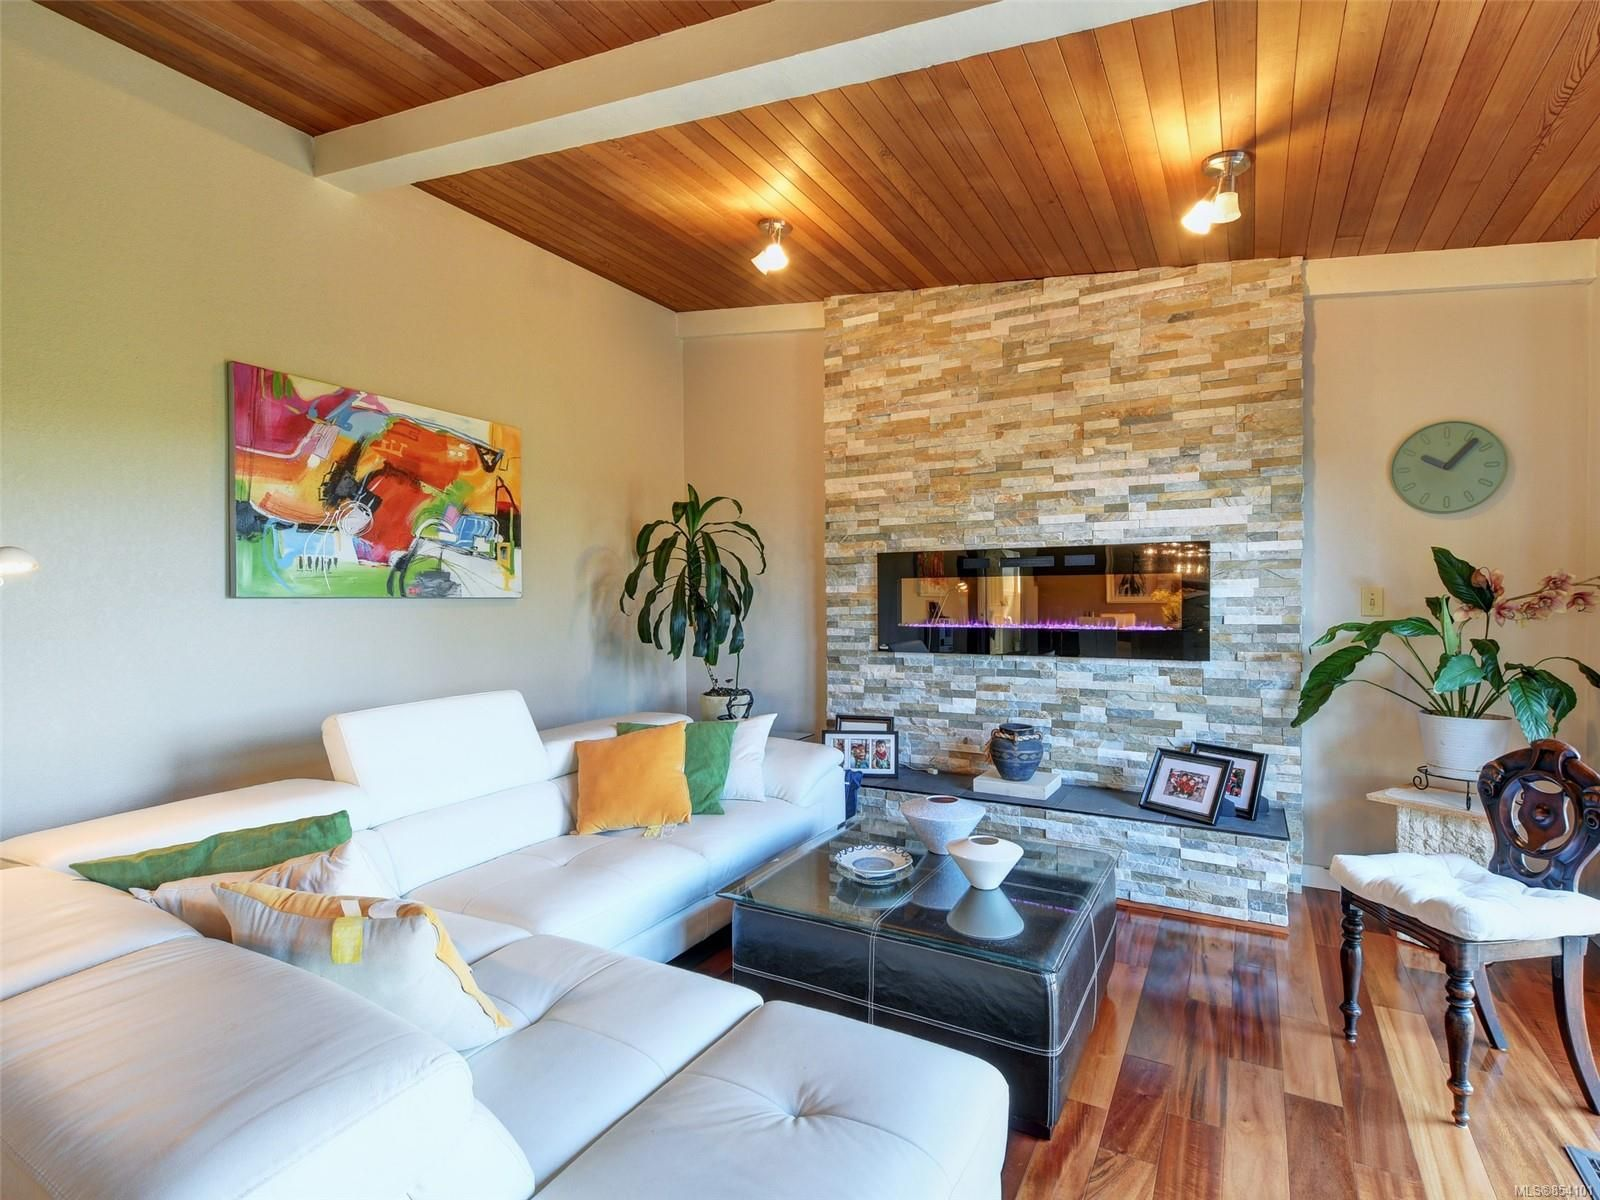 Main Photo: 4113 Mariposa Hts in : SW Strawberry Vale House for sale (Saanich West)  : MLS®# 854101